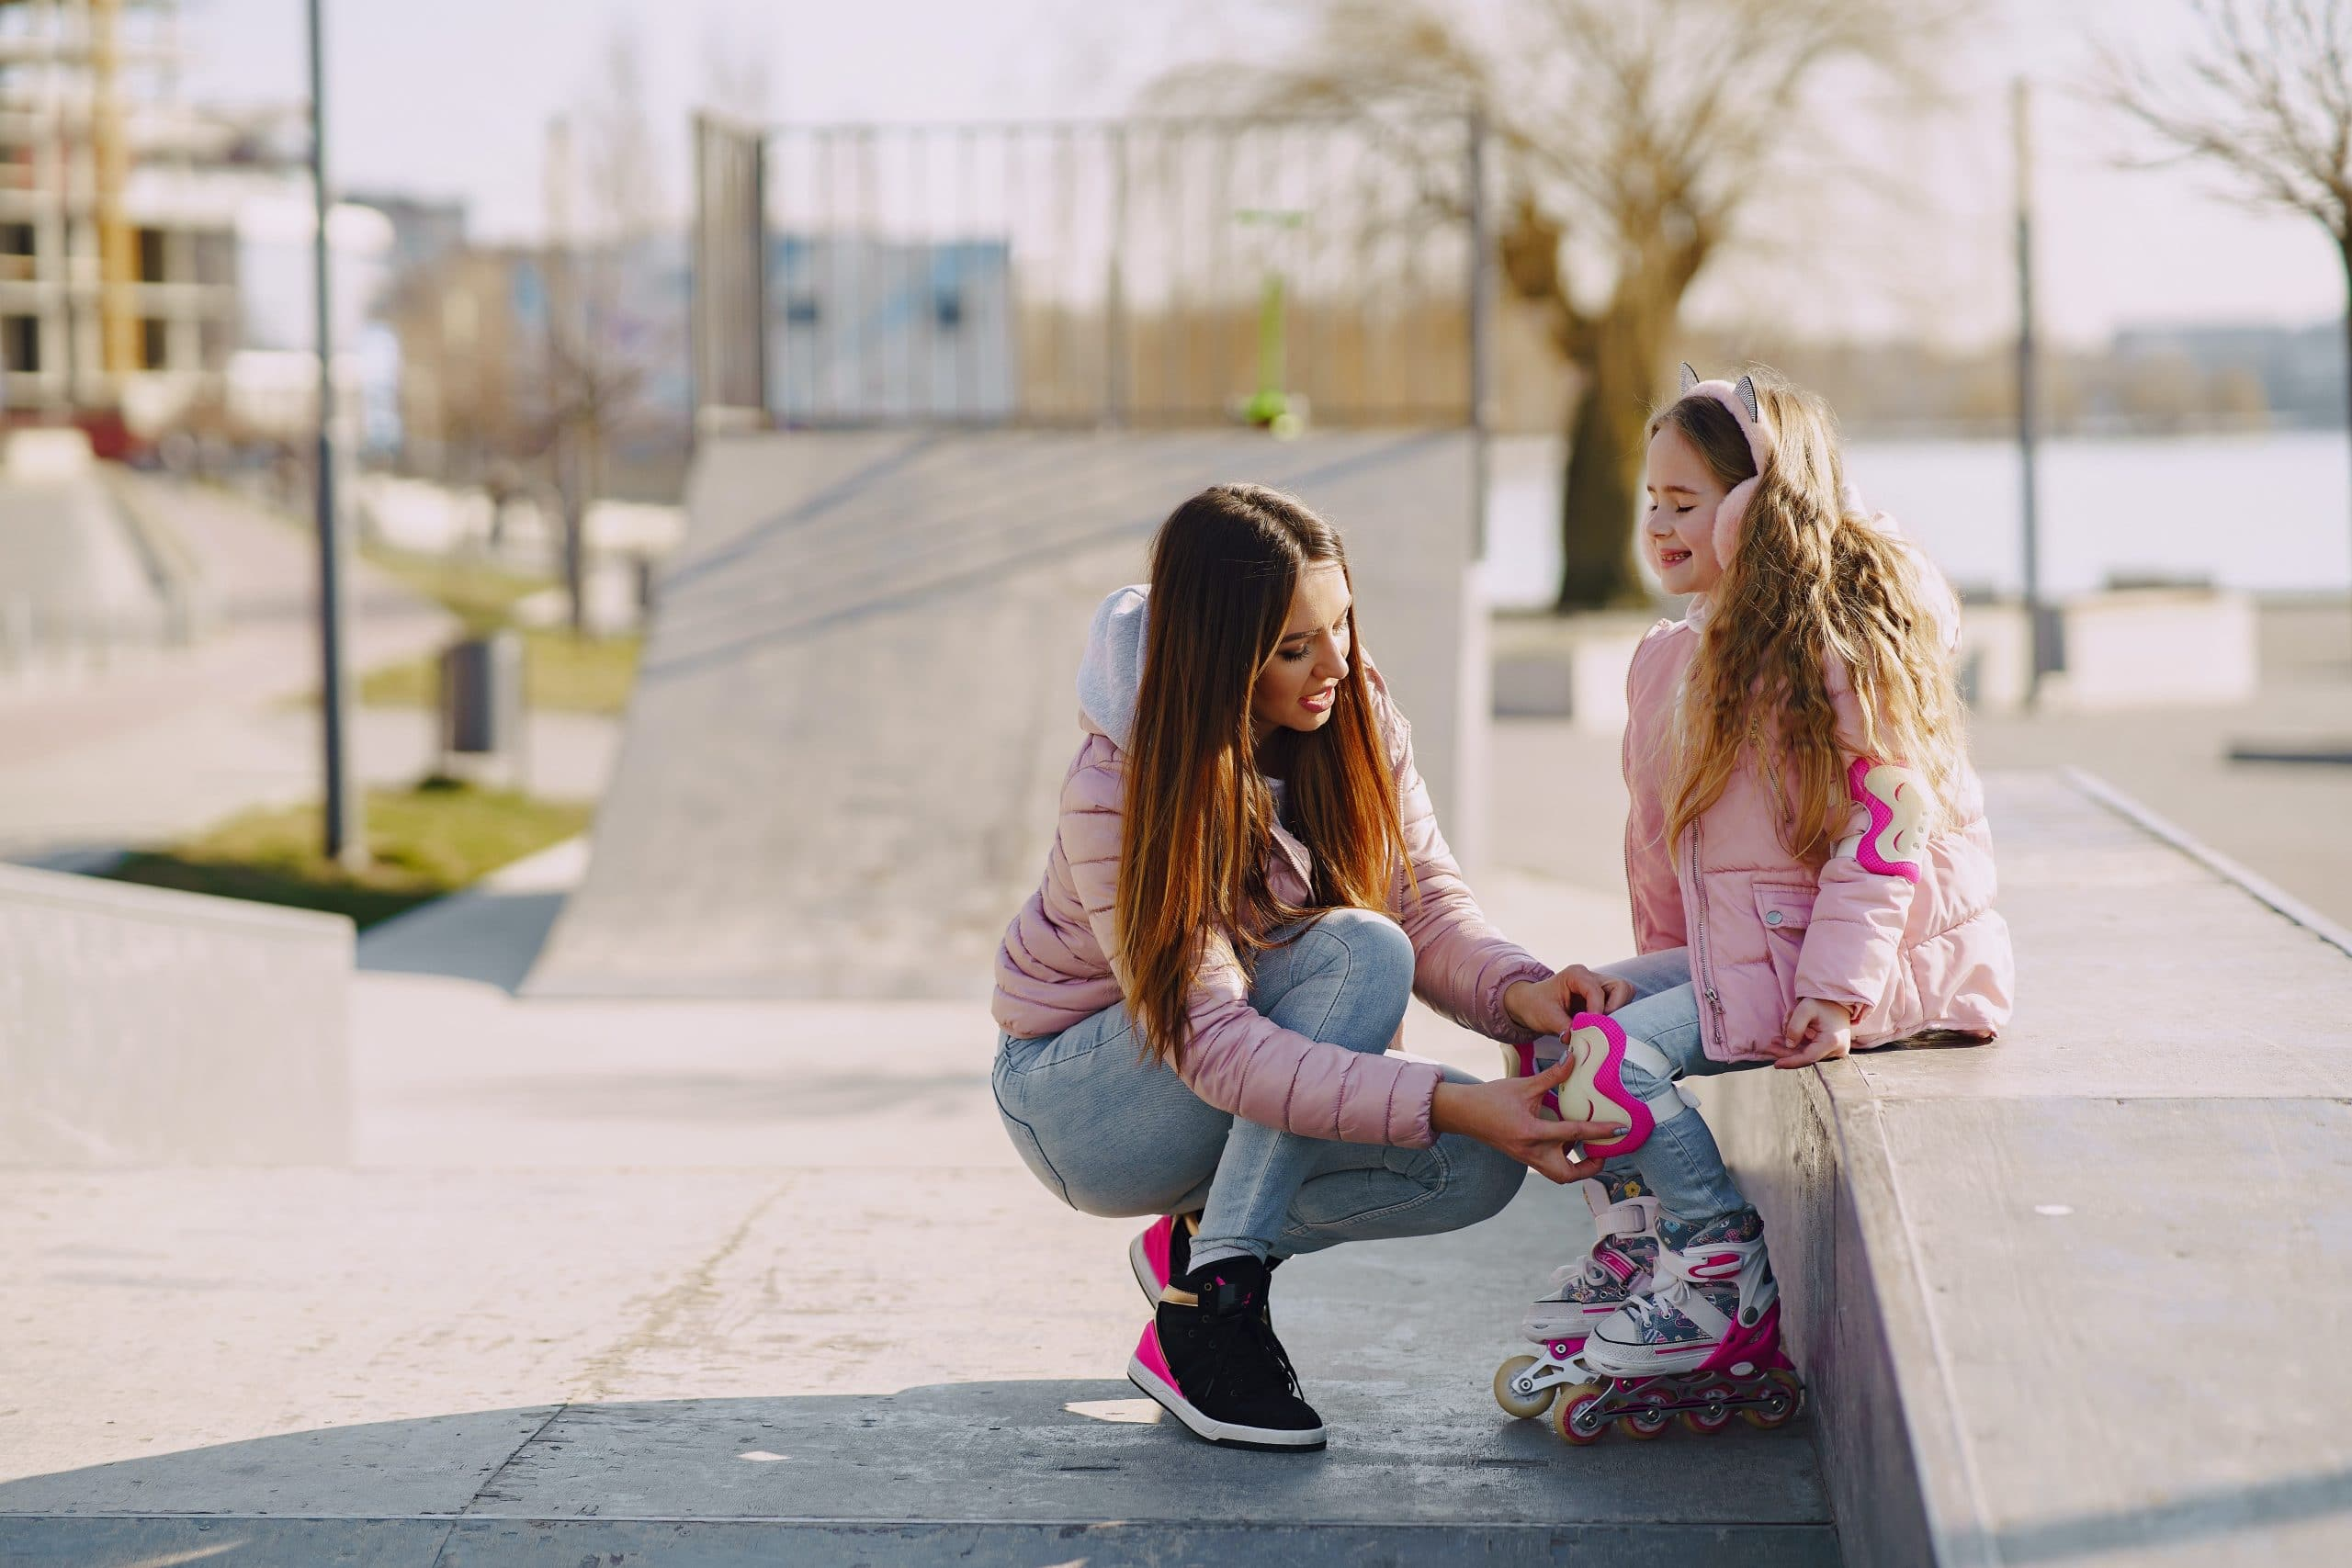 Stylish mom putting knee pads on daughter for roller skating